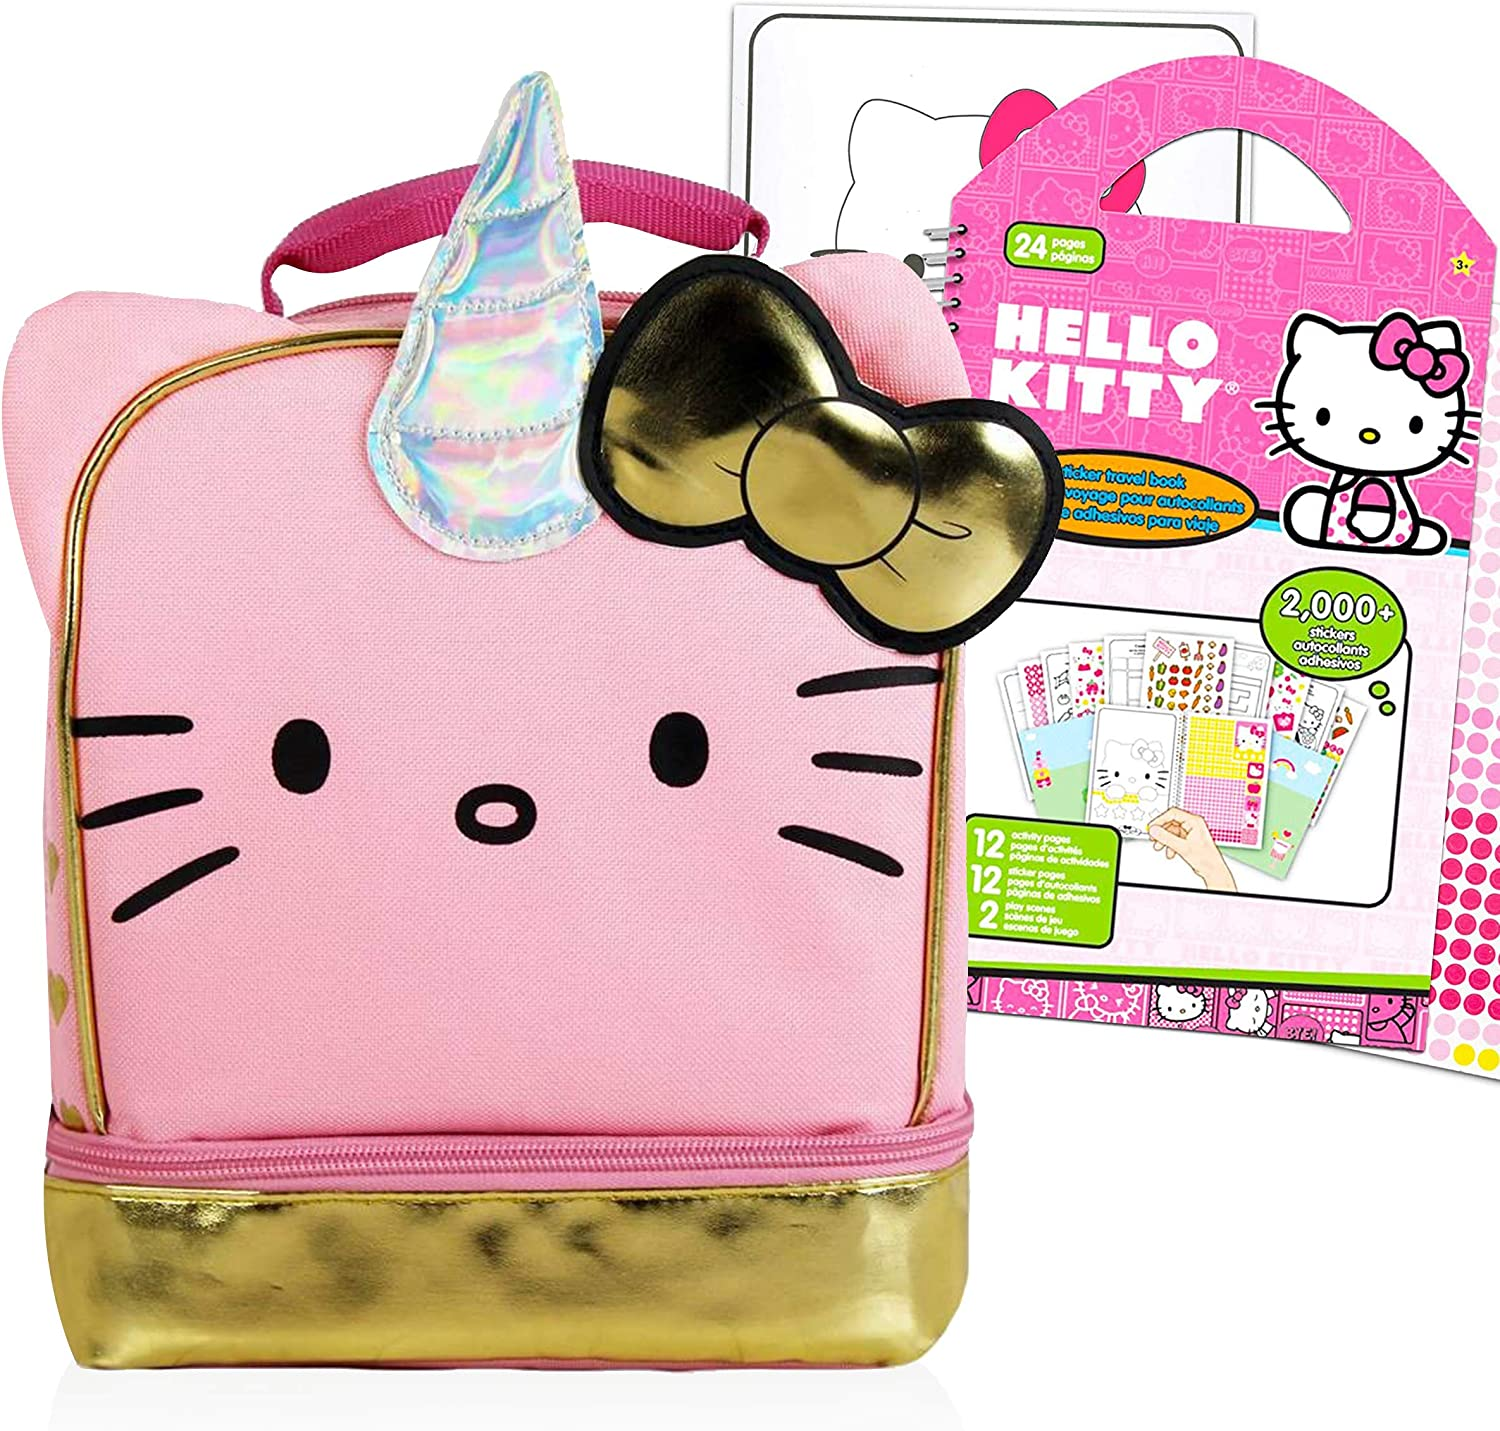 Hello Kitty Lunch Bag School And ~ Excellence L Travel Max 88% OFF Supplies